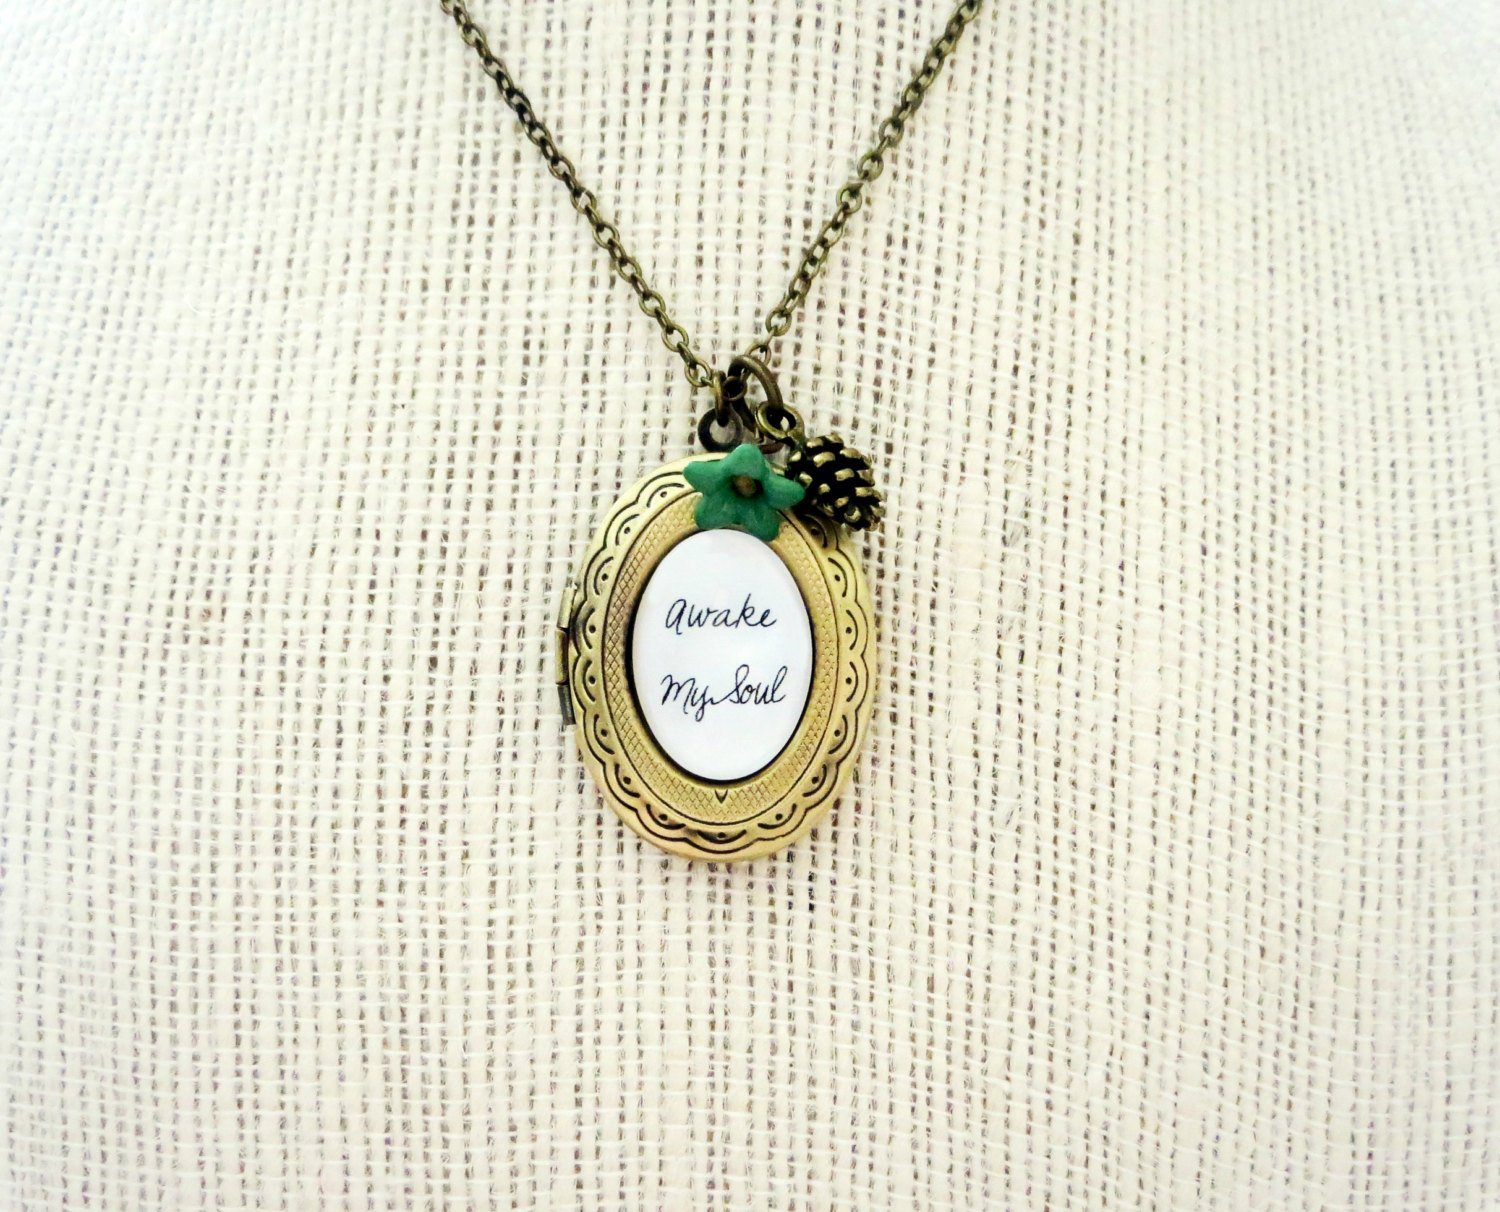 Mumford And Sons Awake My Soul Inspired Locket Necklace Pinecone Flower Charm (18 inches)